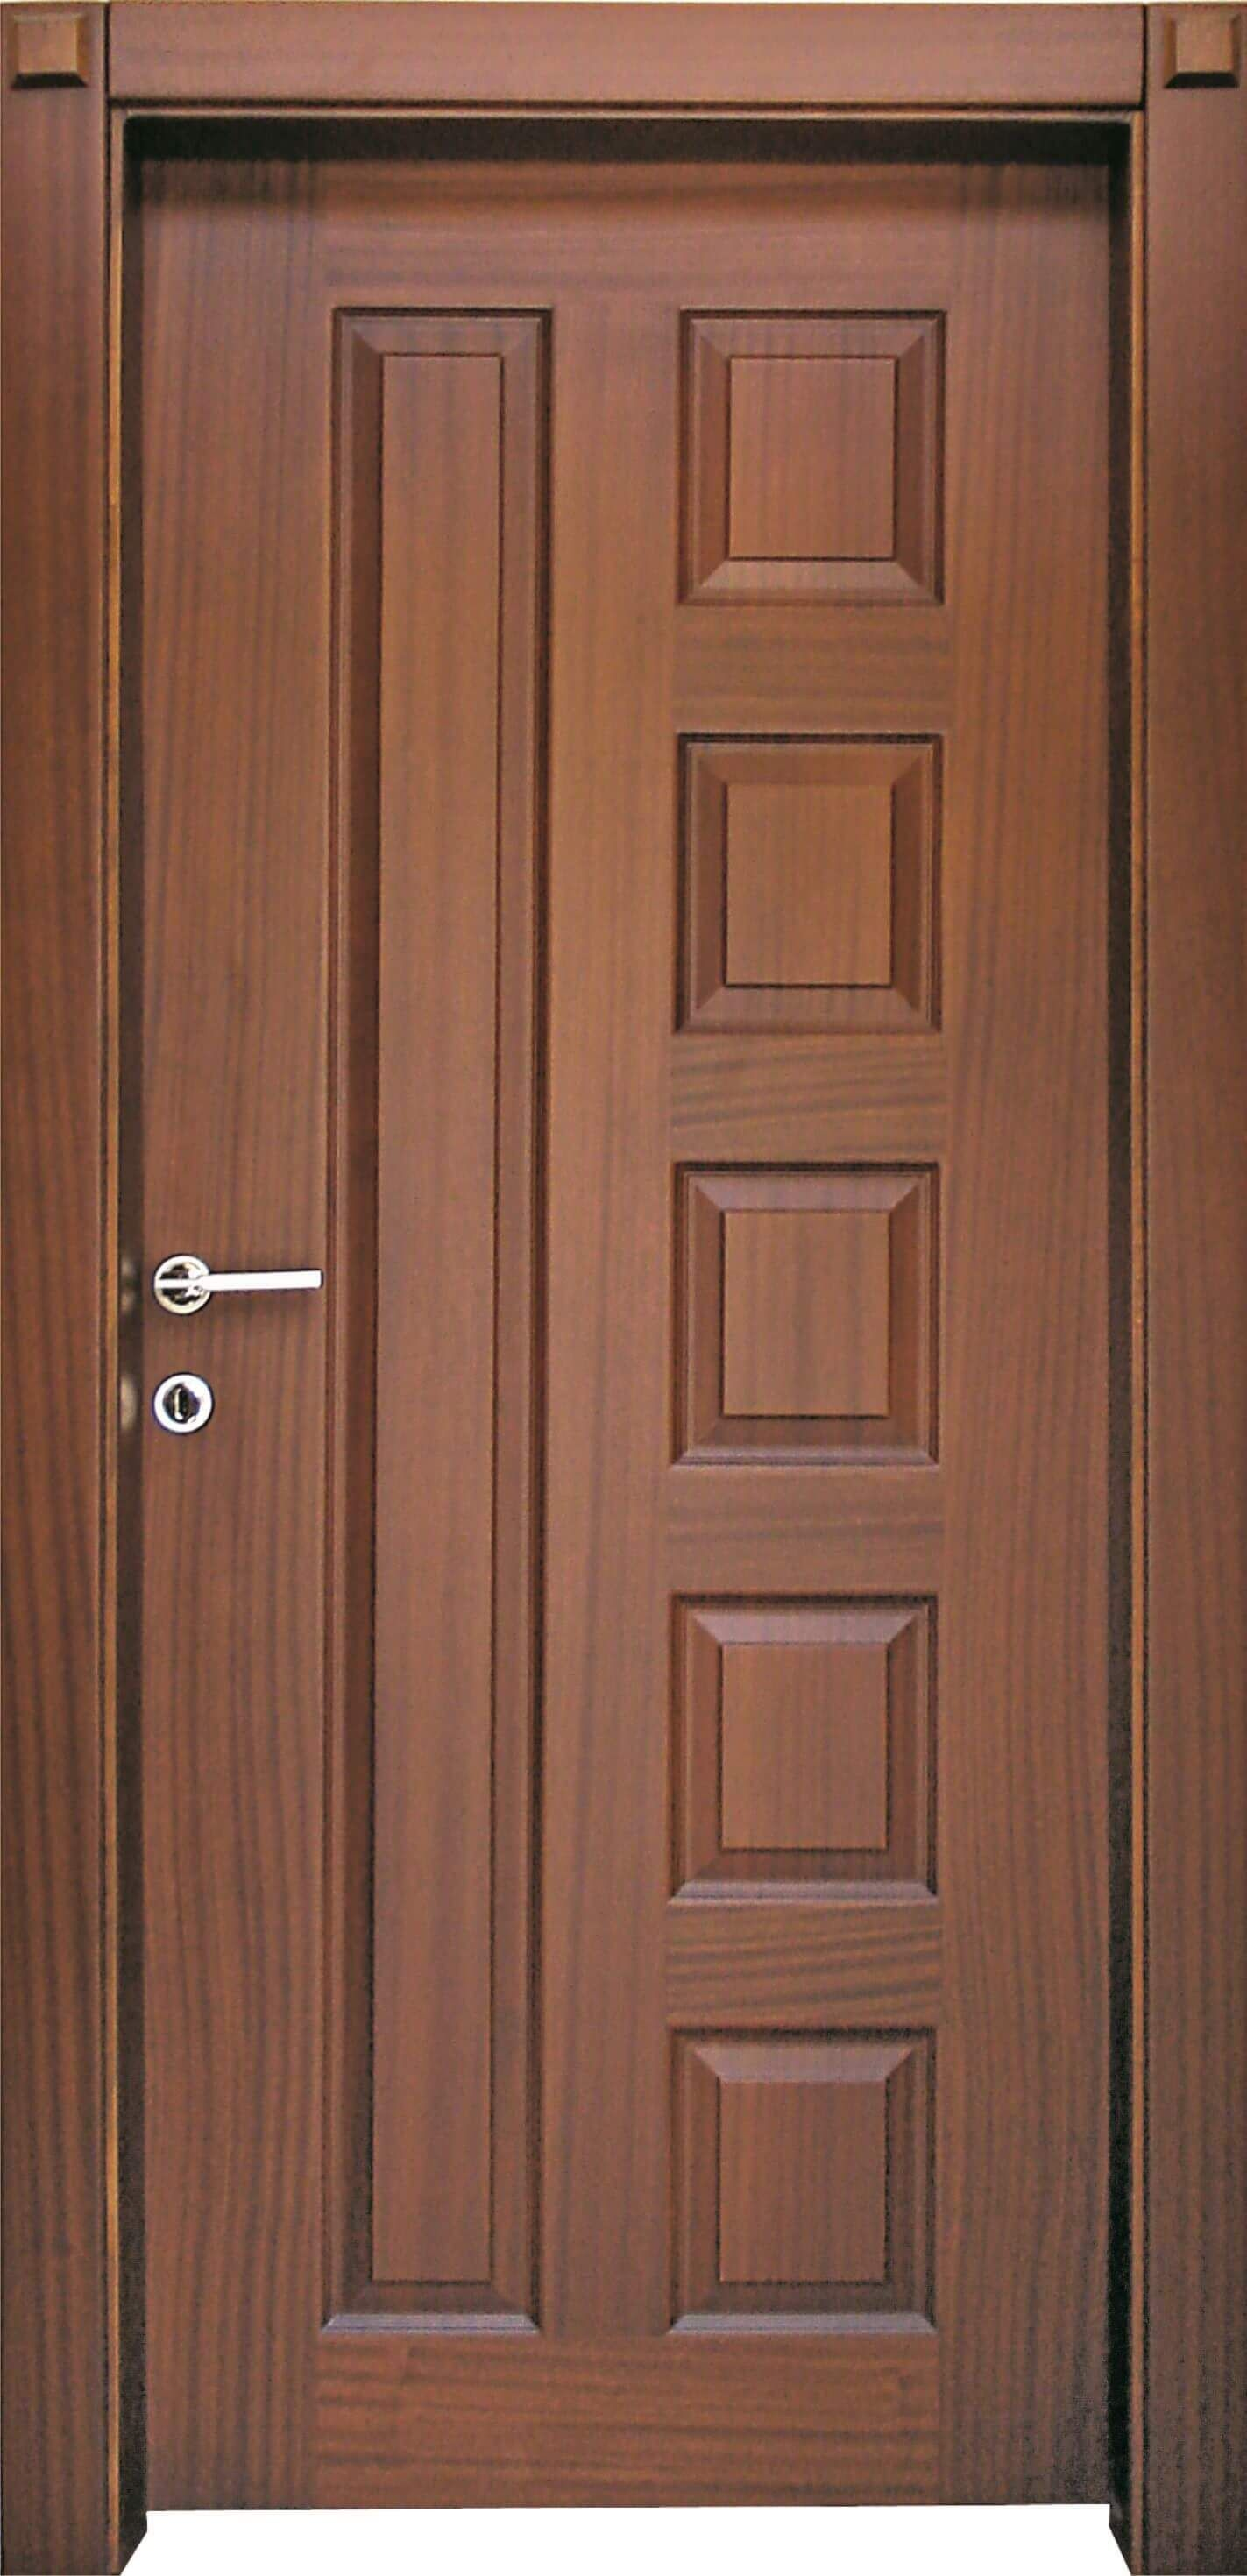 Pin By Dewi Sarwono On Deep Wooden Door Design Door Design Wooden Main Door Design